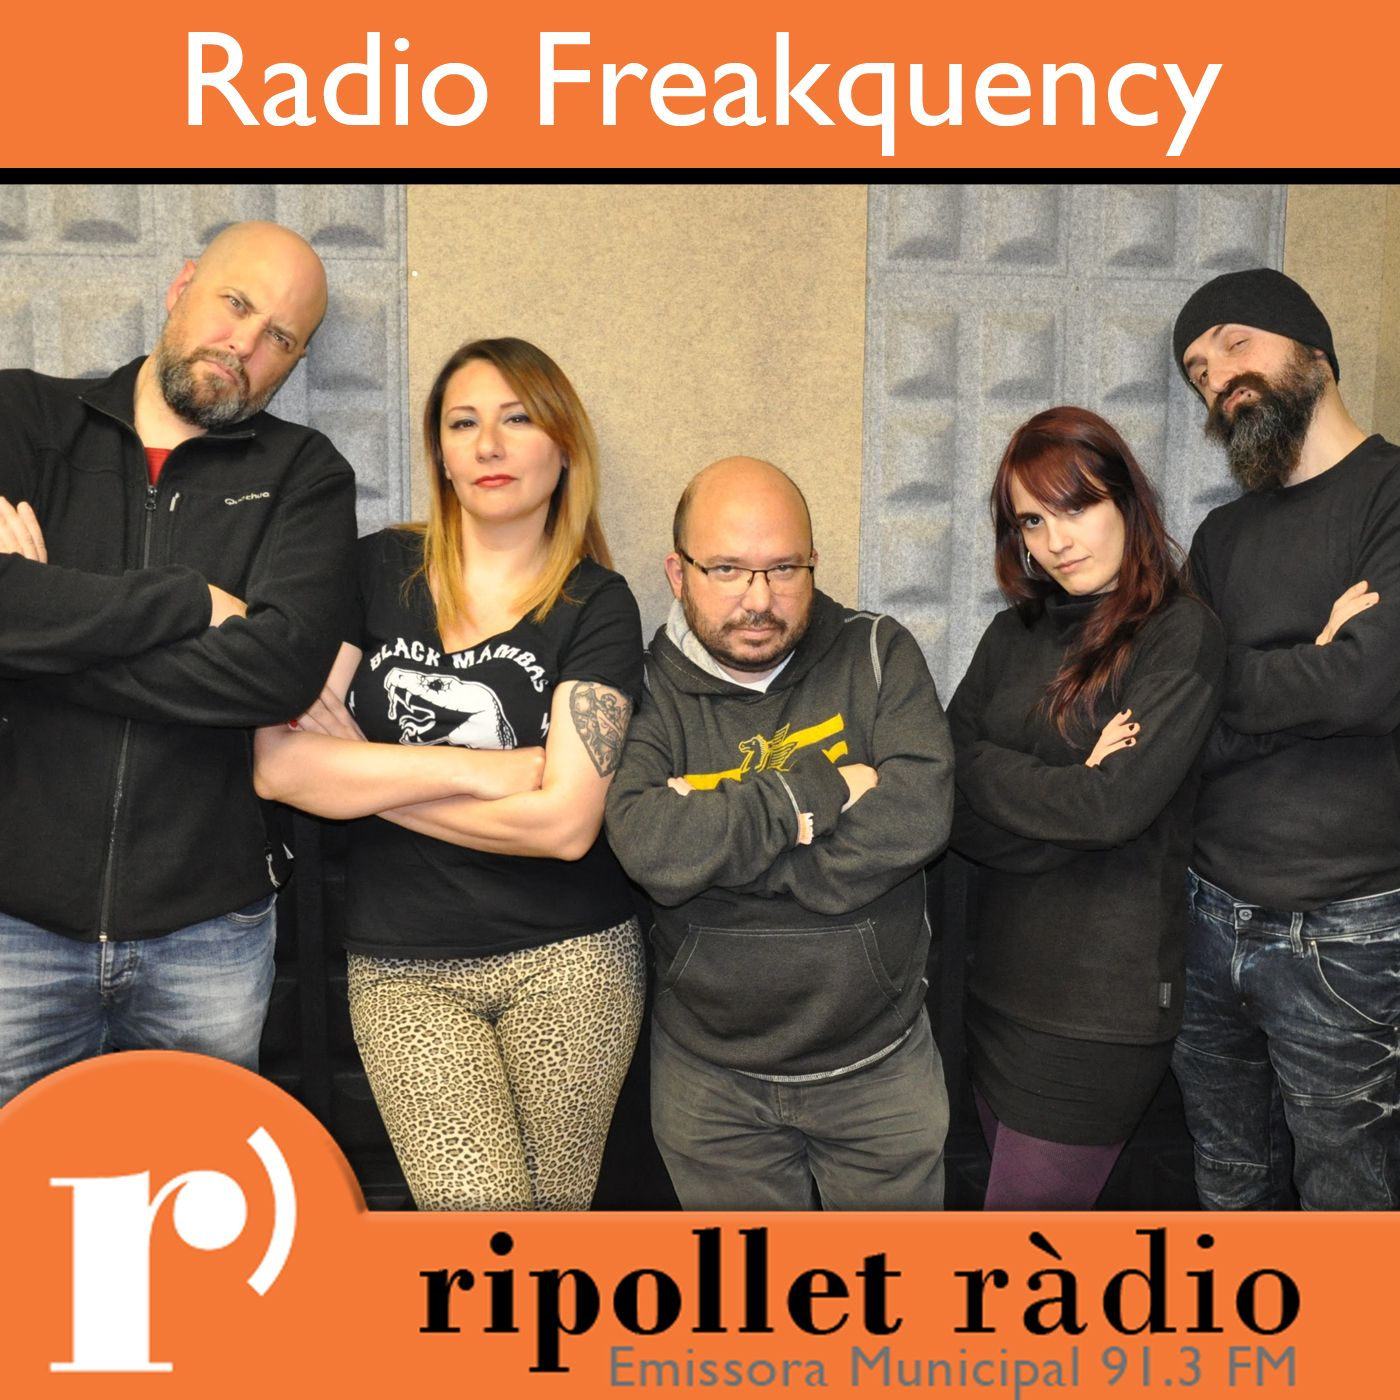 Radio Freakquency